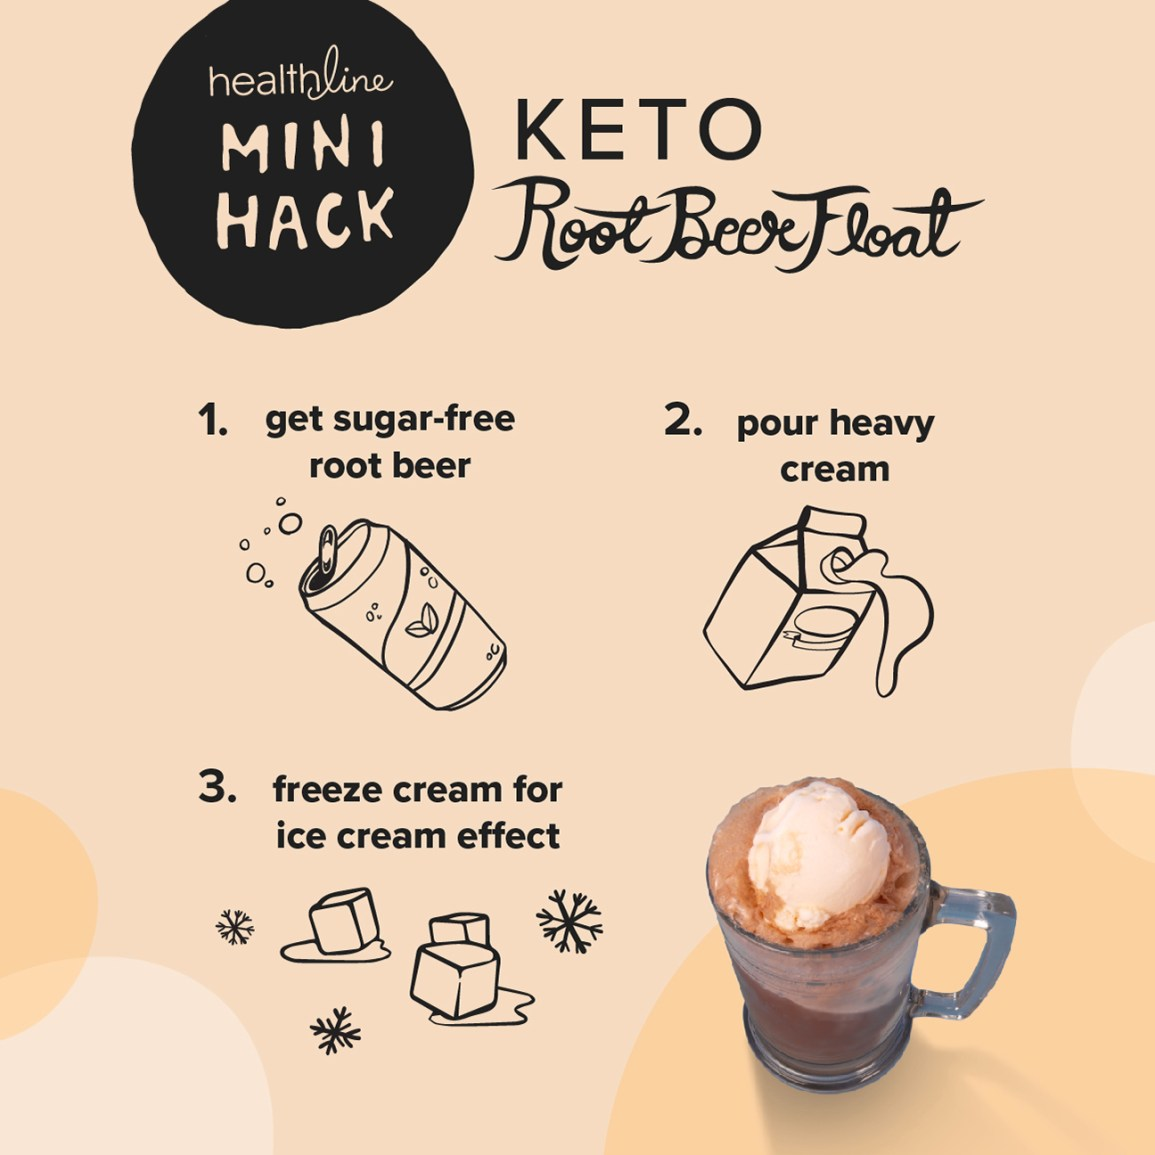 Keto Root Beer Float